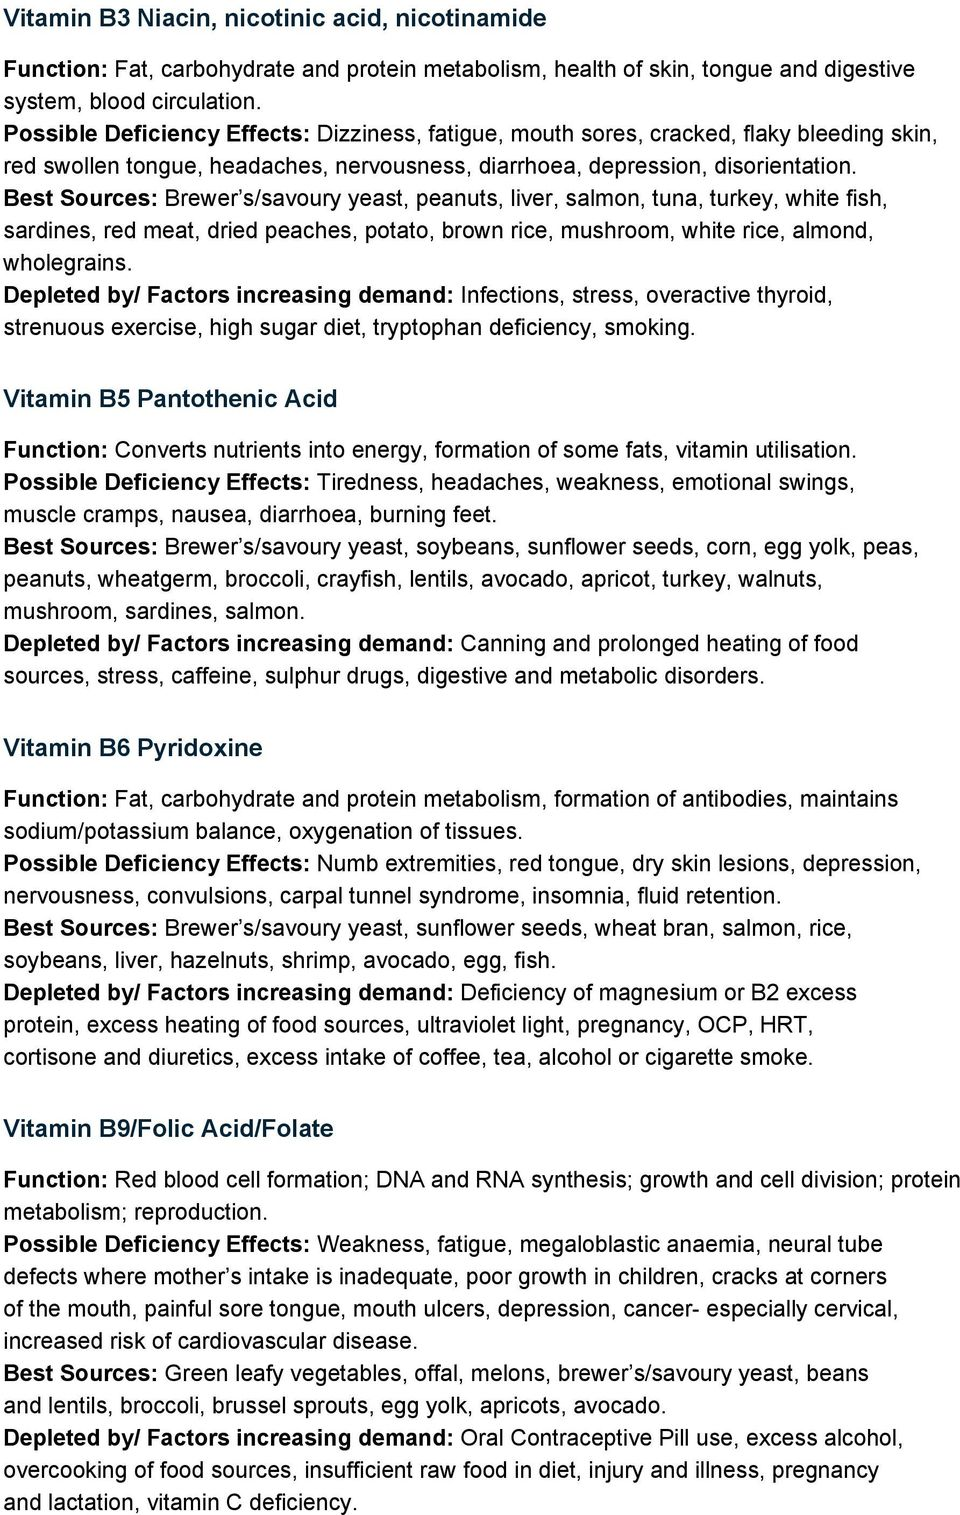 Vitamin and Mineral Assessment - PDF